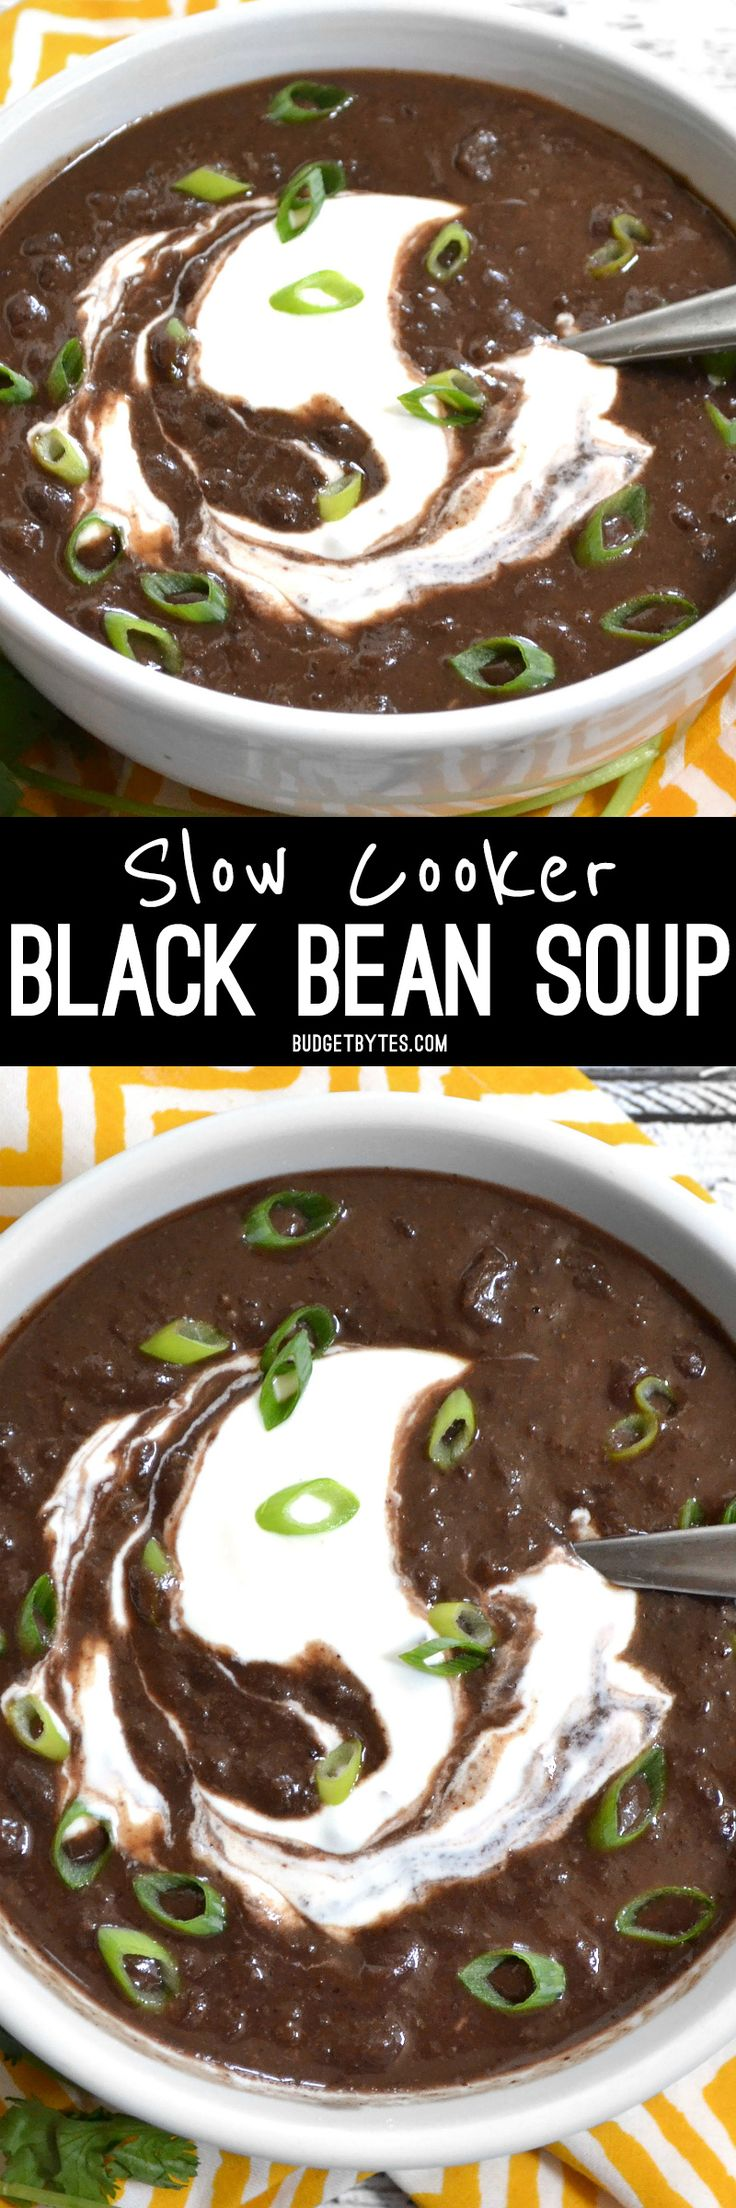 Packed with vegetables, flavor, protein, and fiber, this ultra-flavorful and low-calorie Slow Cooker Black Bean Soup is an all around winner! BudgetBytes.com